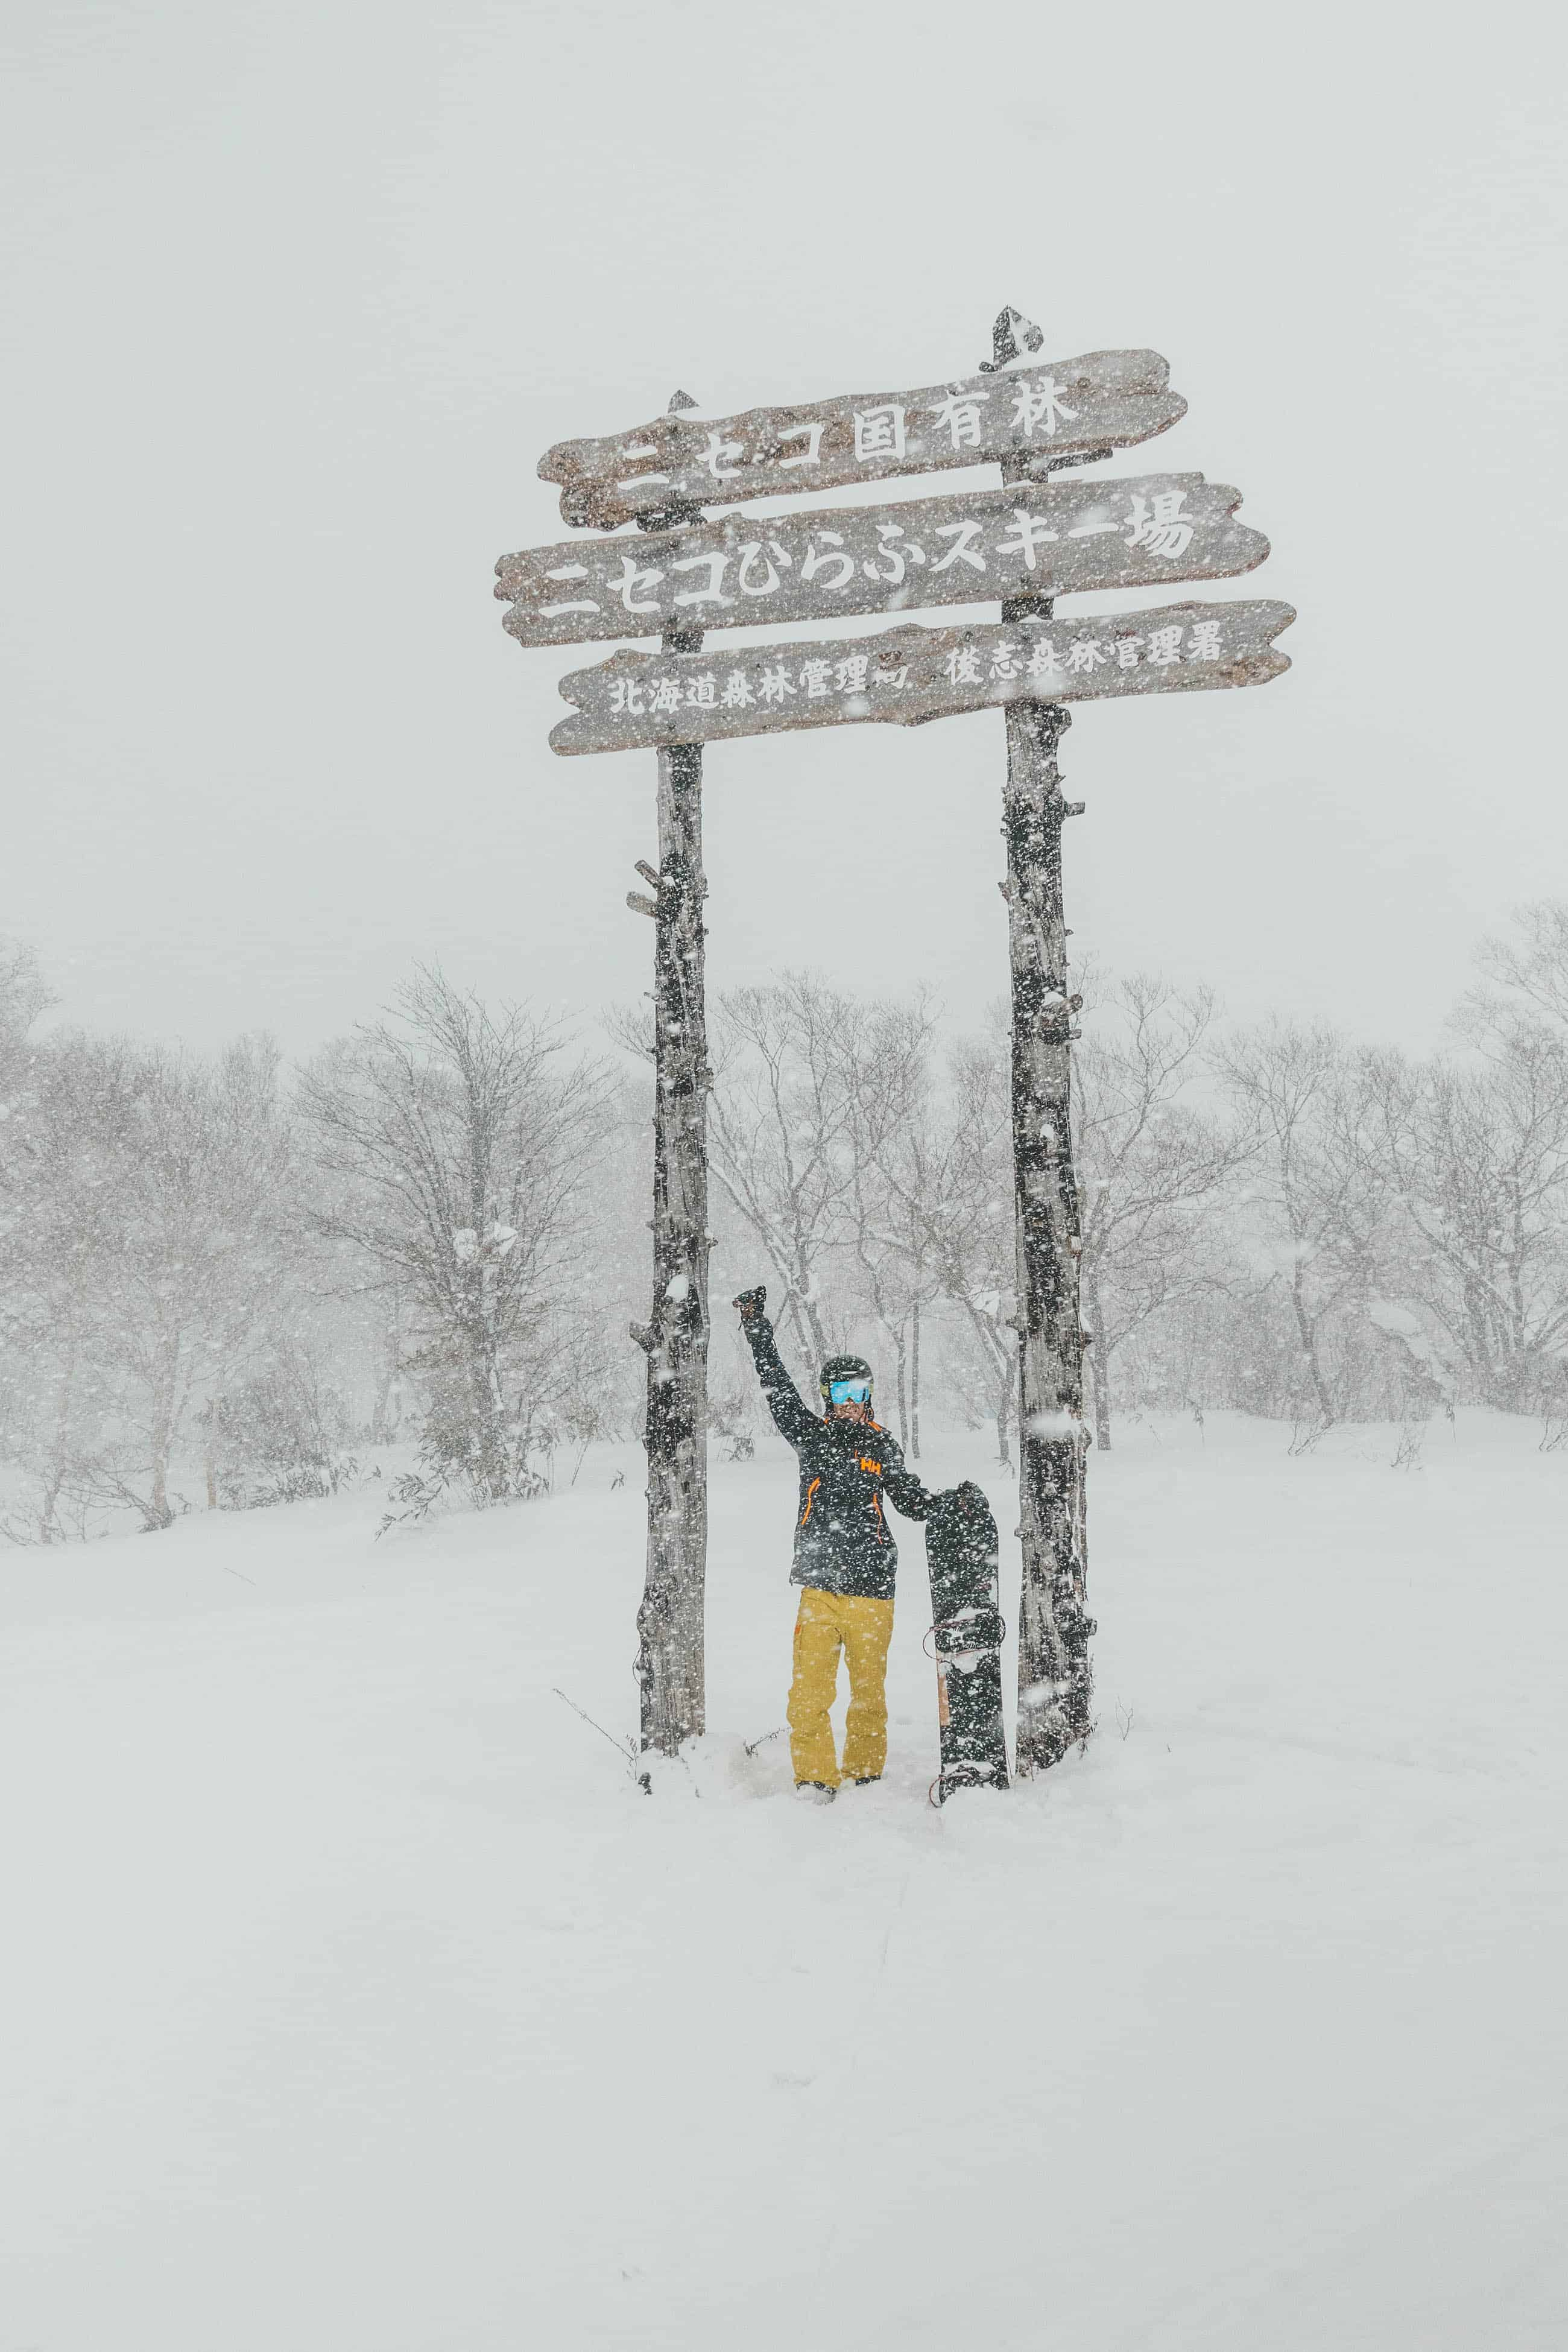 Cameron Standing in Niseko Hanazono Sign in Japan with Snowboard